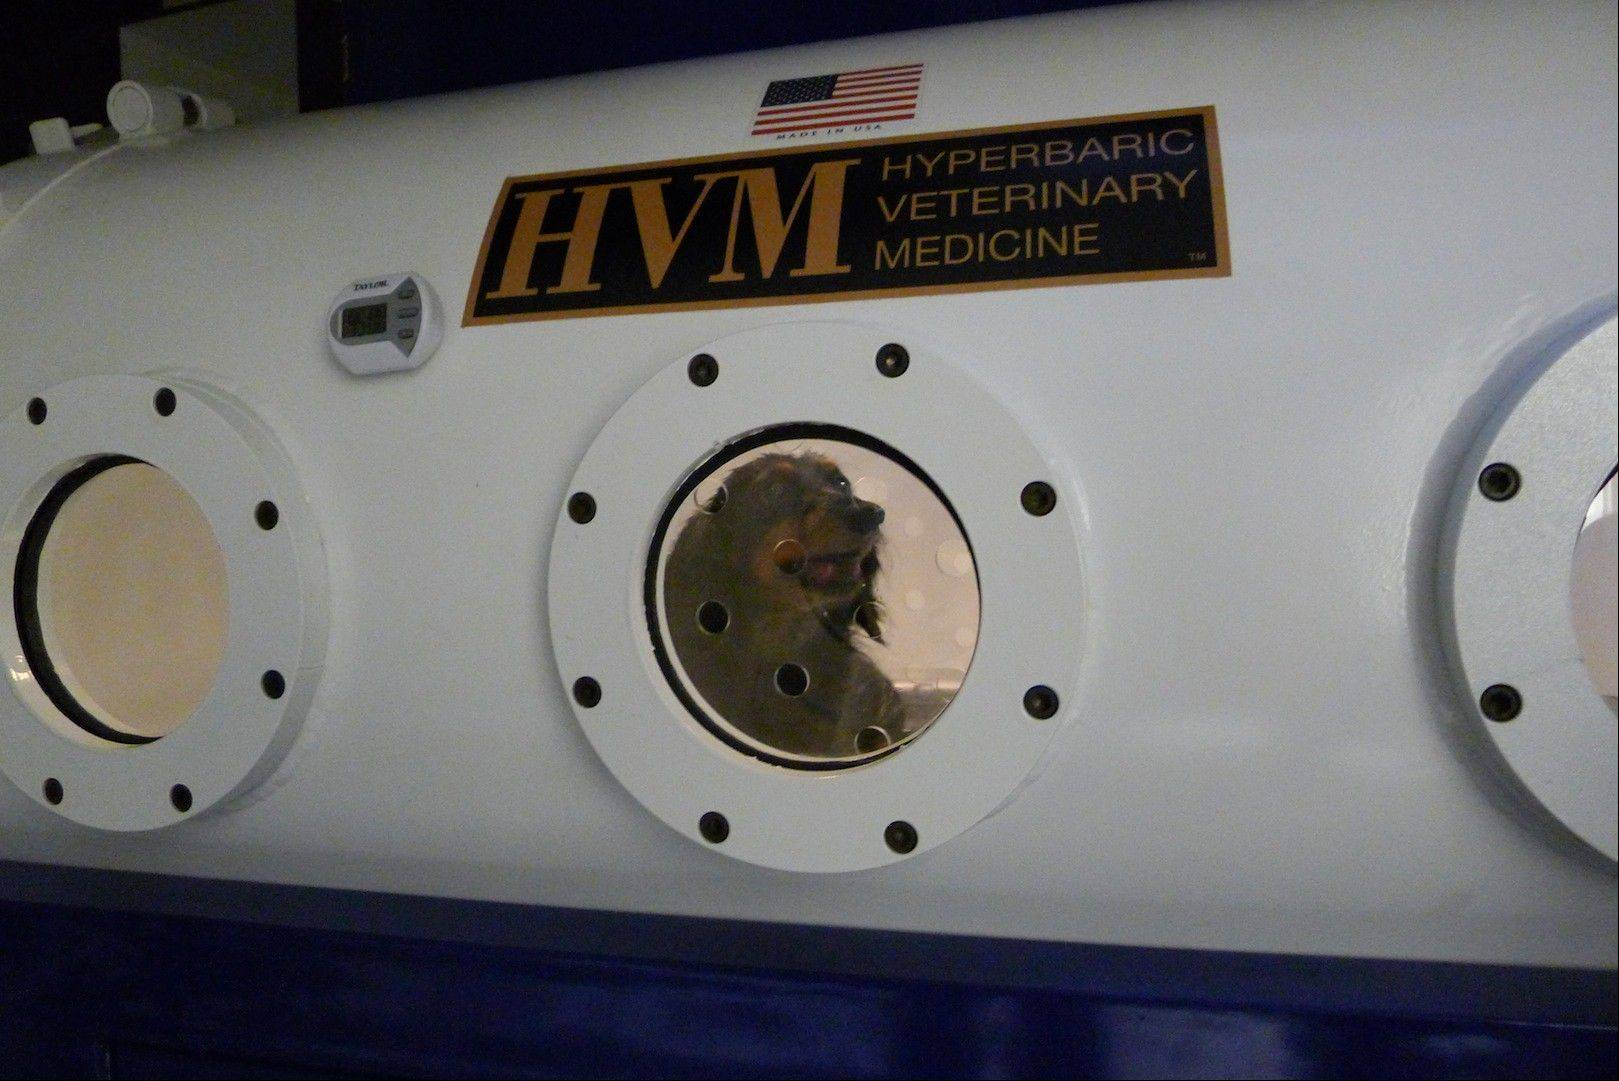 A dachshund named Maggie is treated in a hyperbaric chamber for an infection and paw wound at the University of Florida's College of Veterinary Medicine, in Gainesville, Fla.